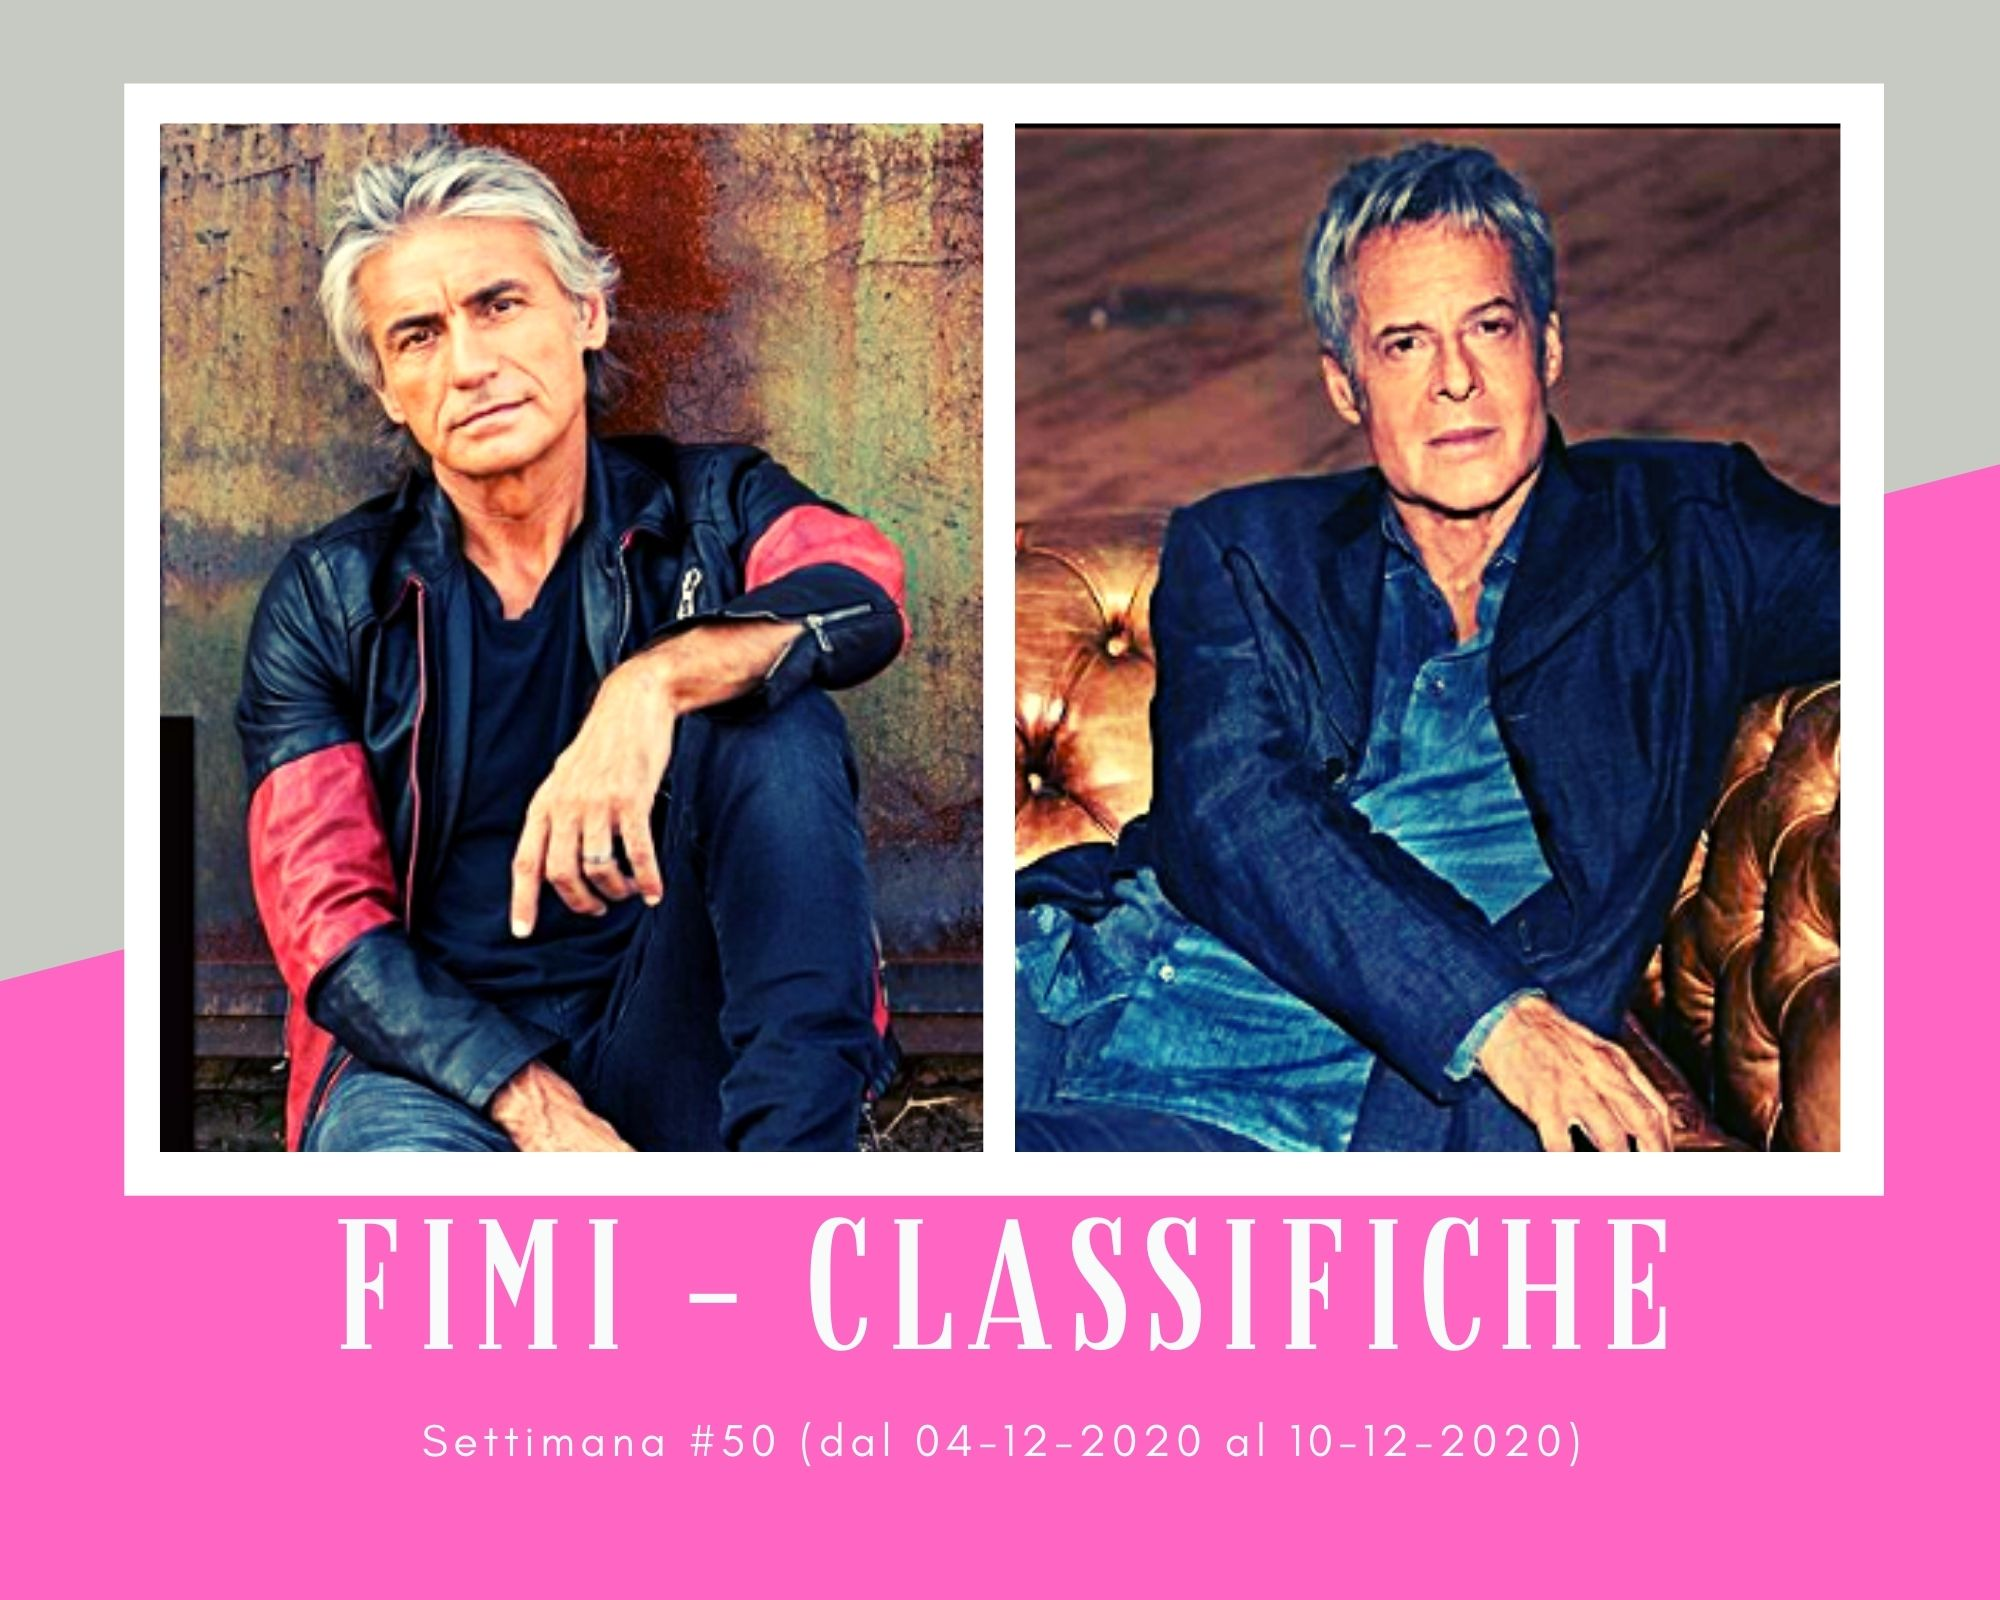 Classifiche FIMI, week 50. Ligabue batte Claudio Baglioni, Achille Lauro cede la corona a Mariah Carey